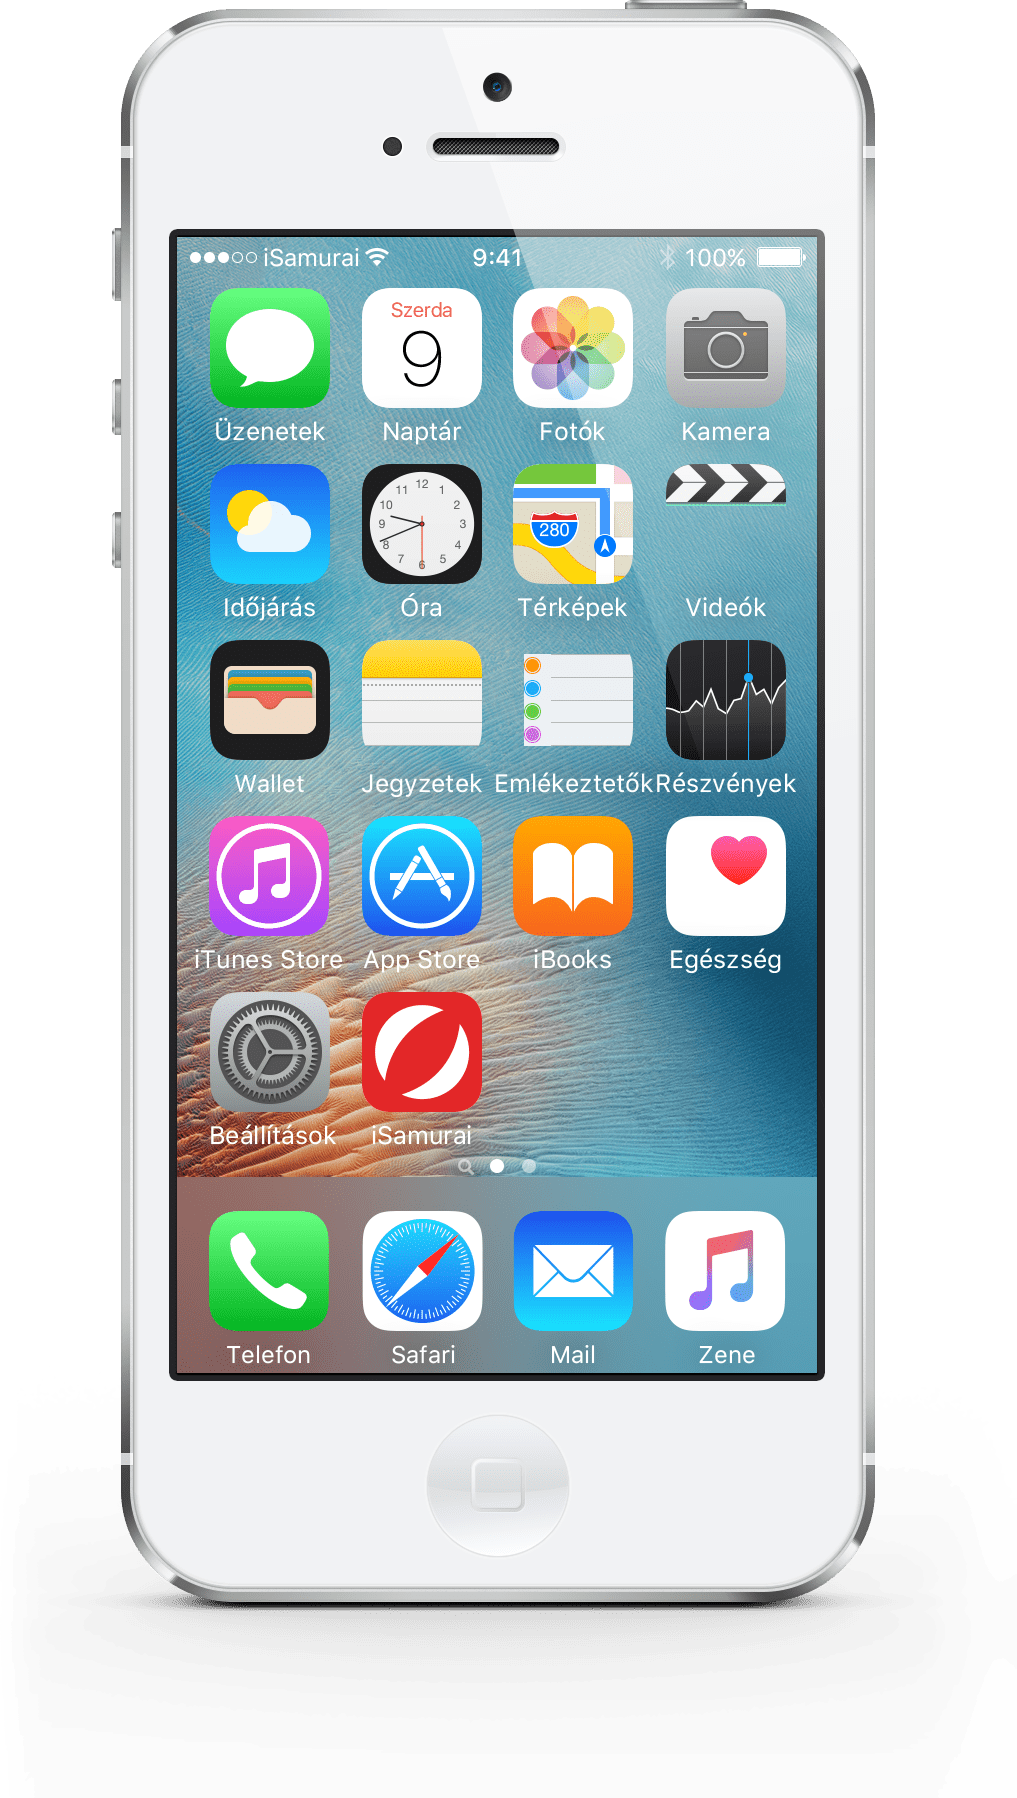 Iphone 5 Png Transparent | www.imgkid.com - The Image Kid ...